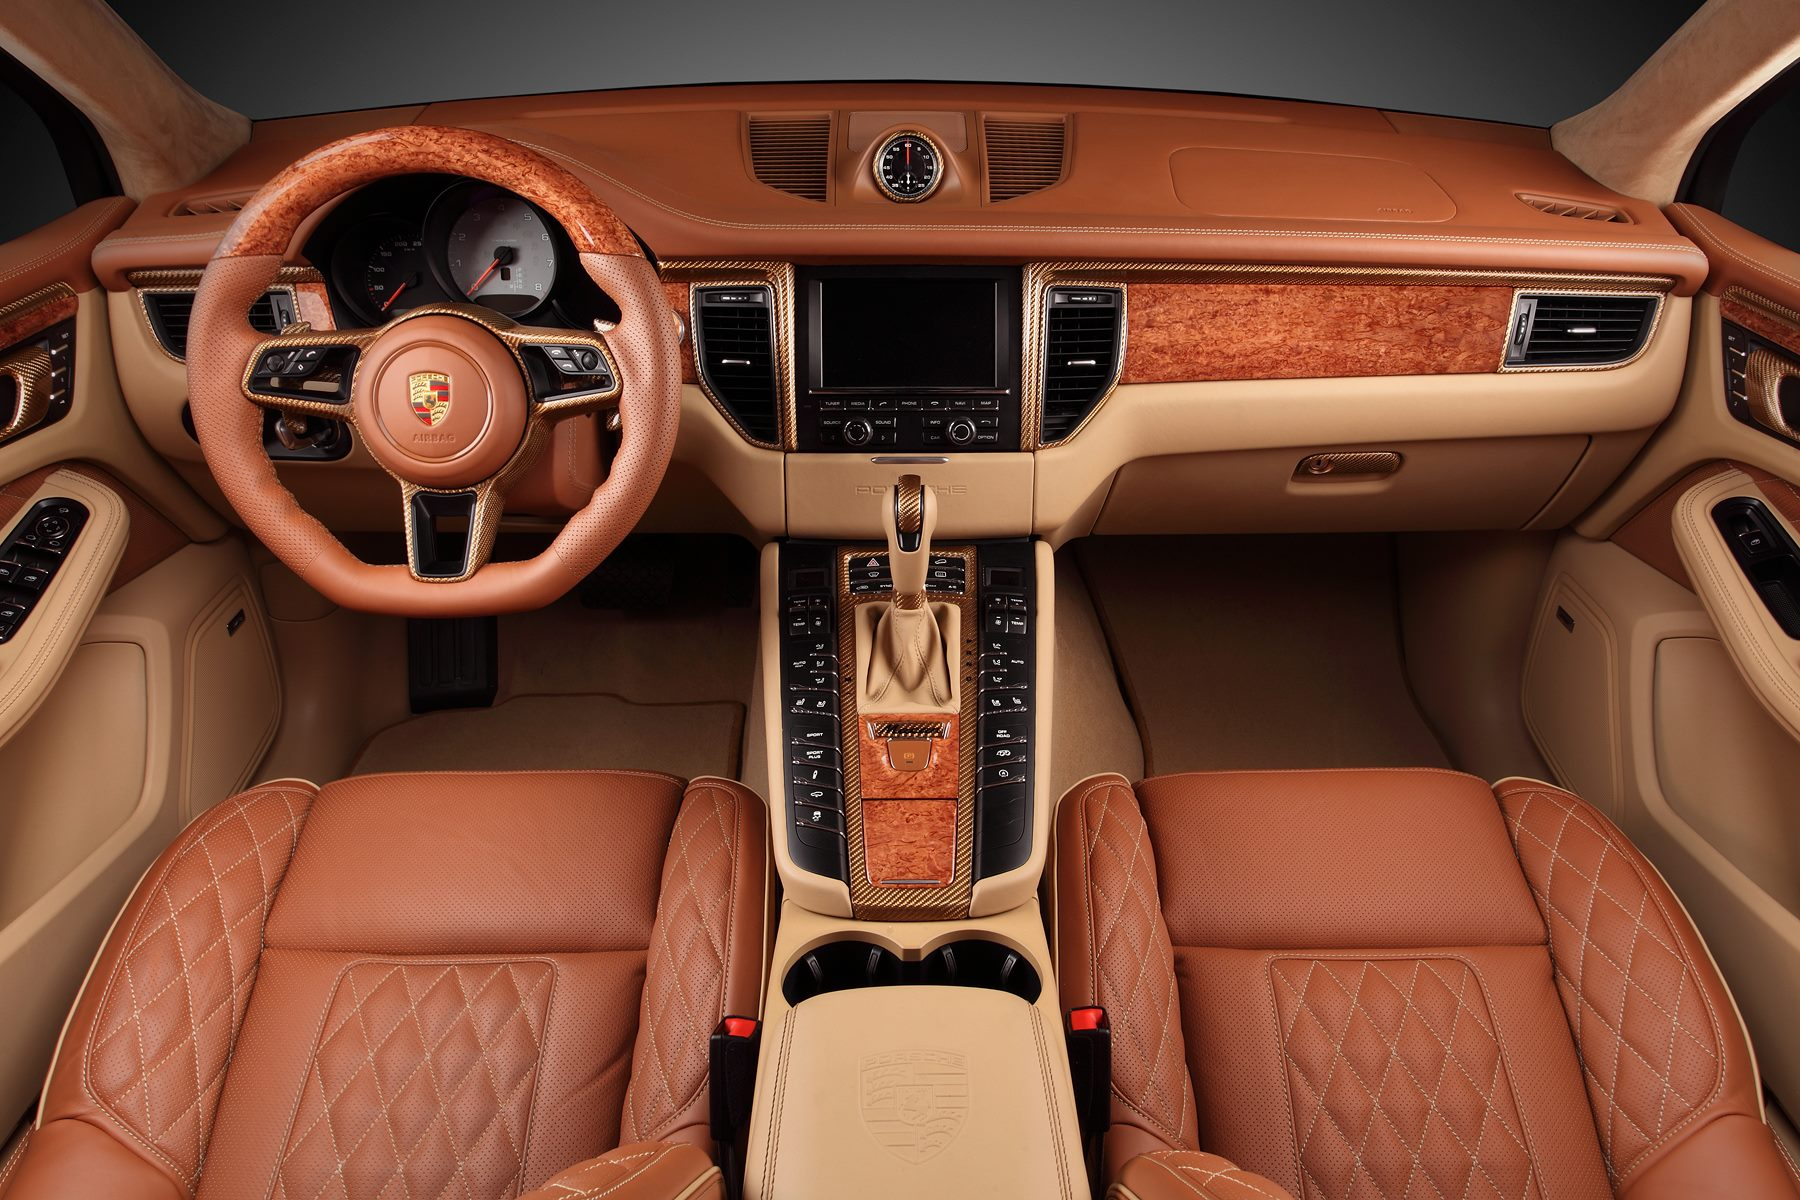 Wood Interior Car macan ursatopcar has gold-colored carbon fiber and wood